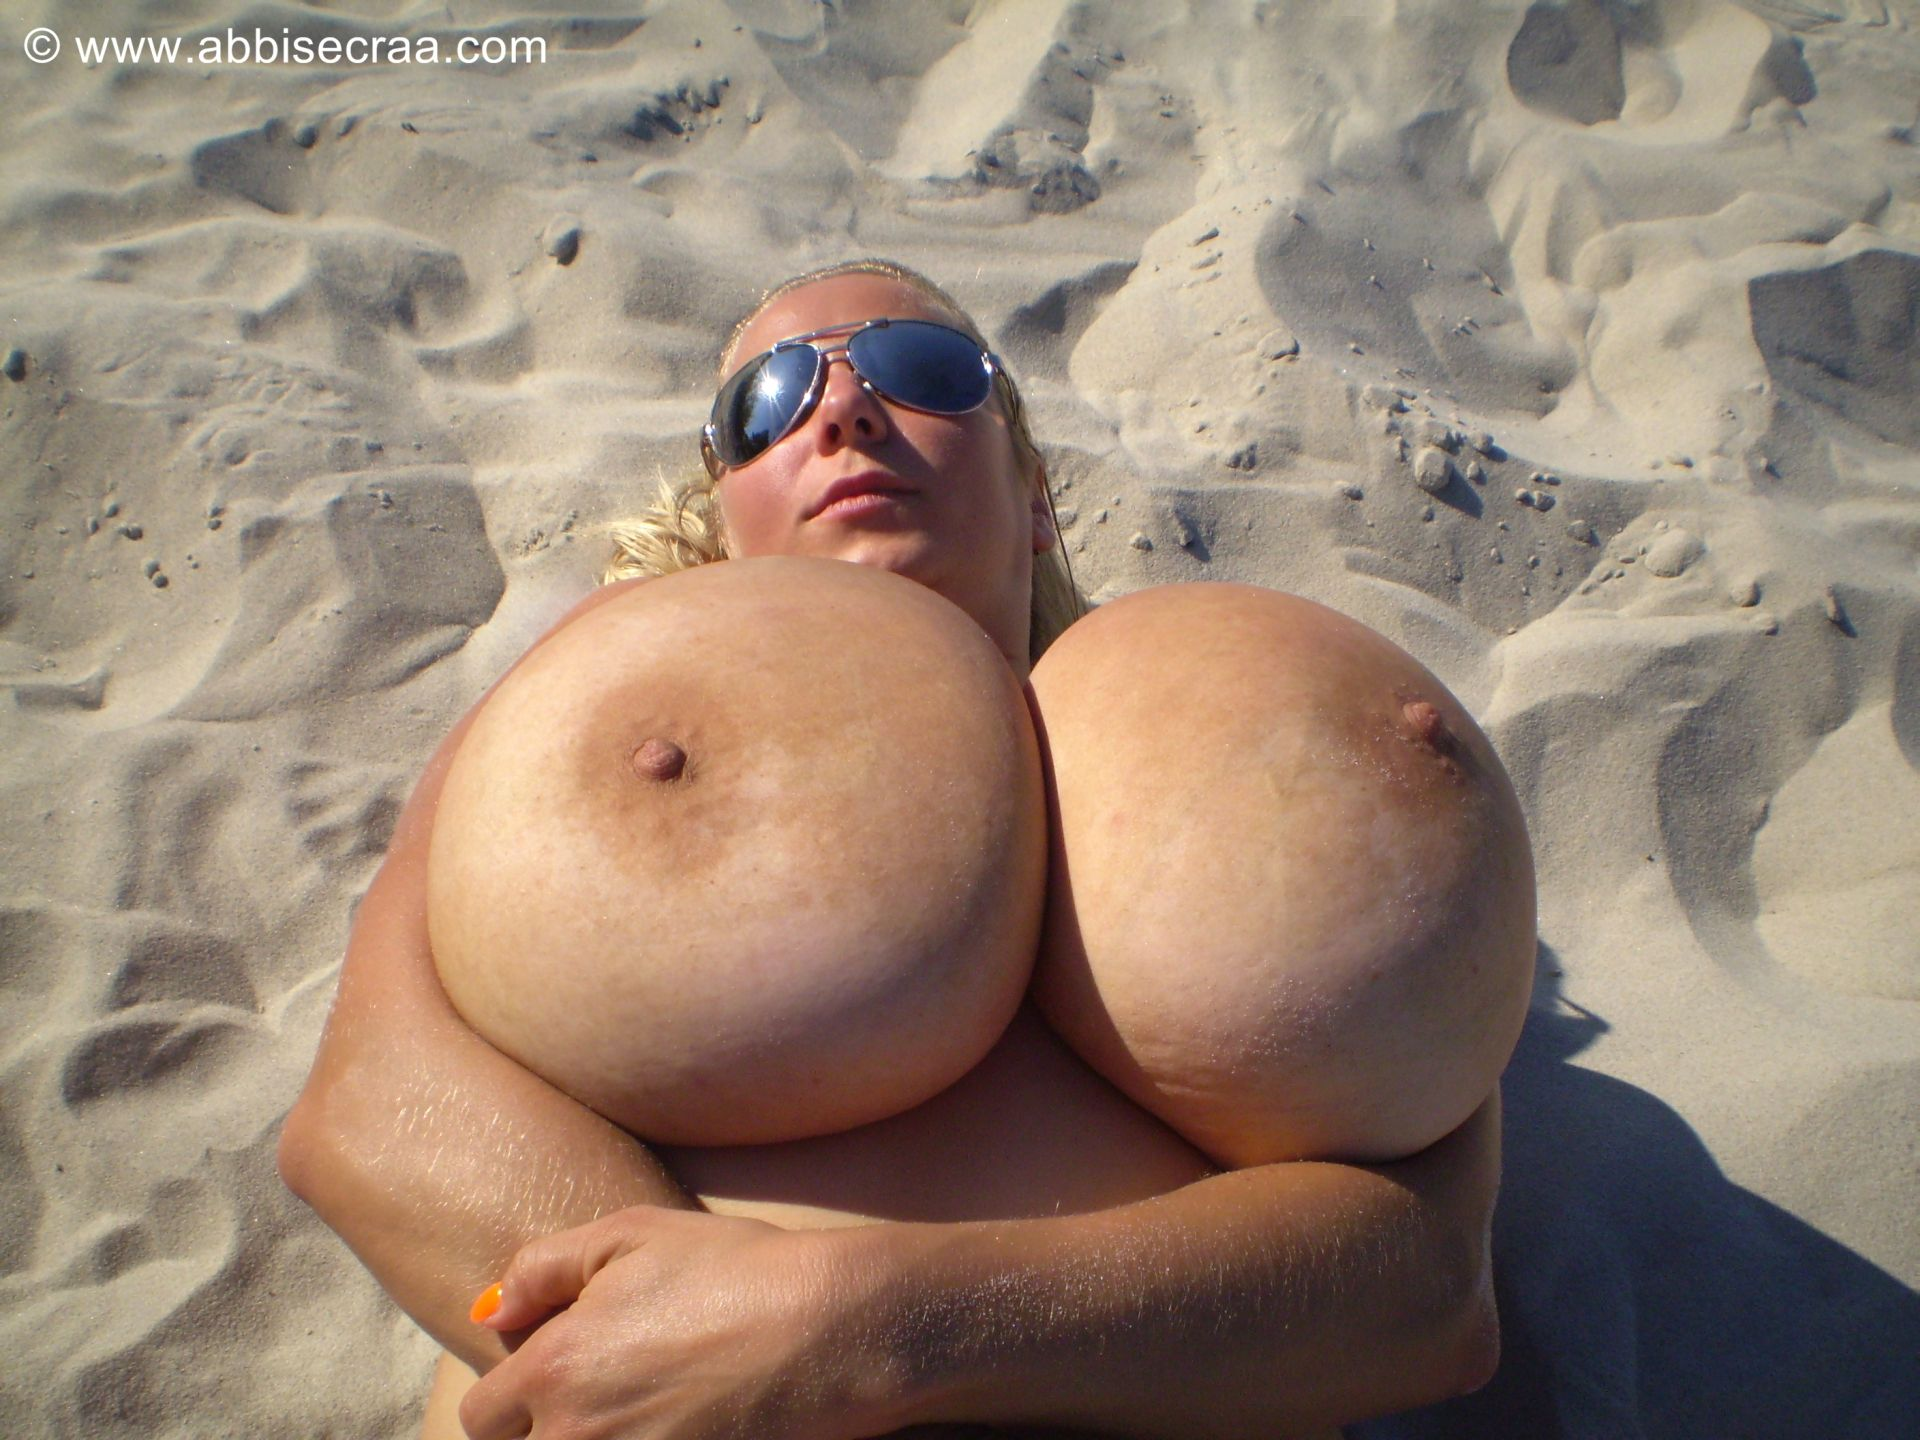 abbi secraa boobs naked beach - Abbi Secraa Massive Boobs …